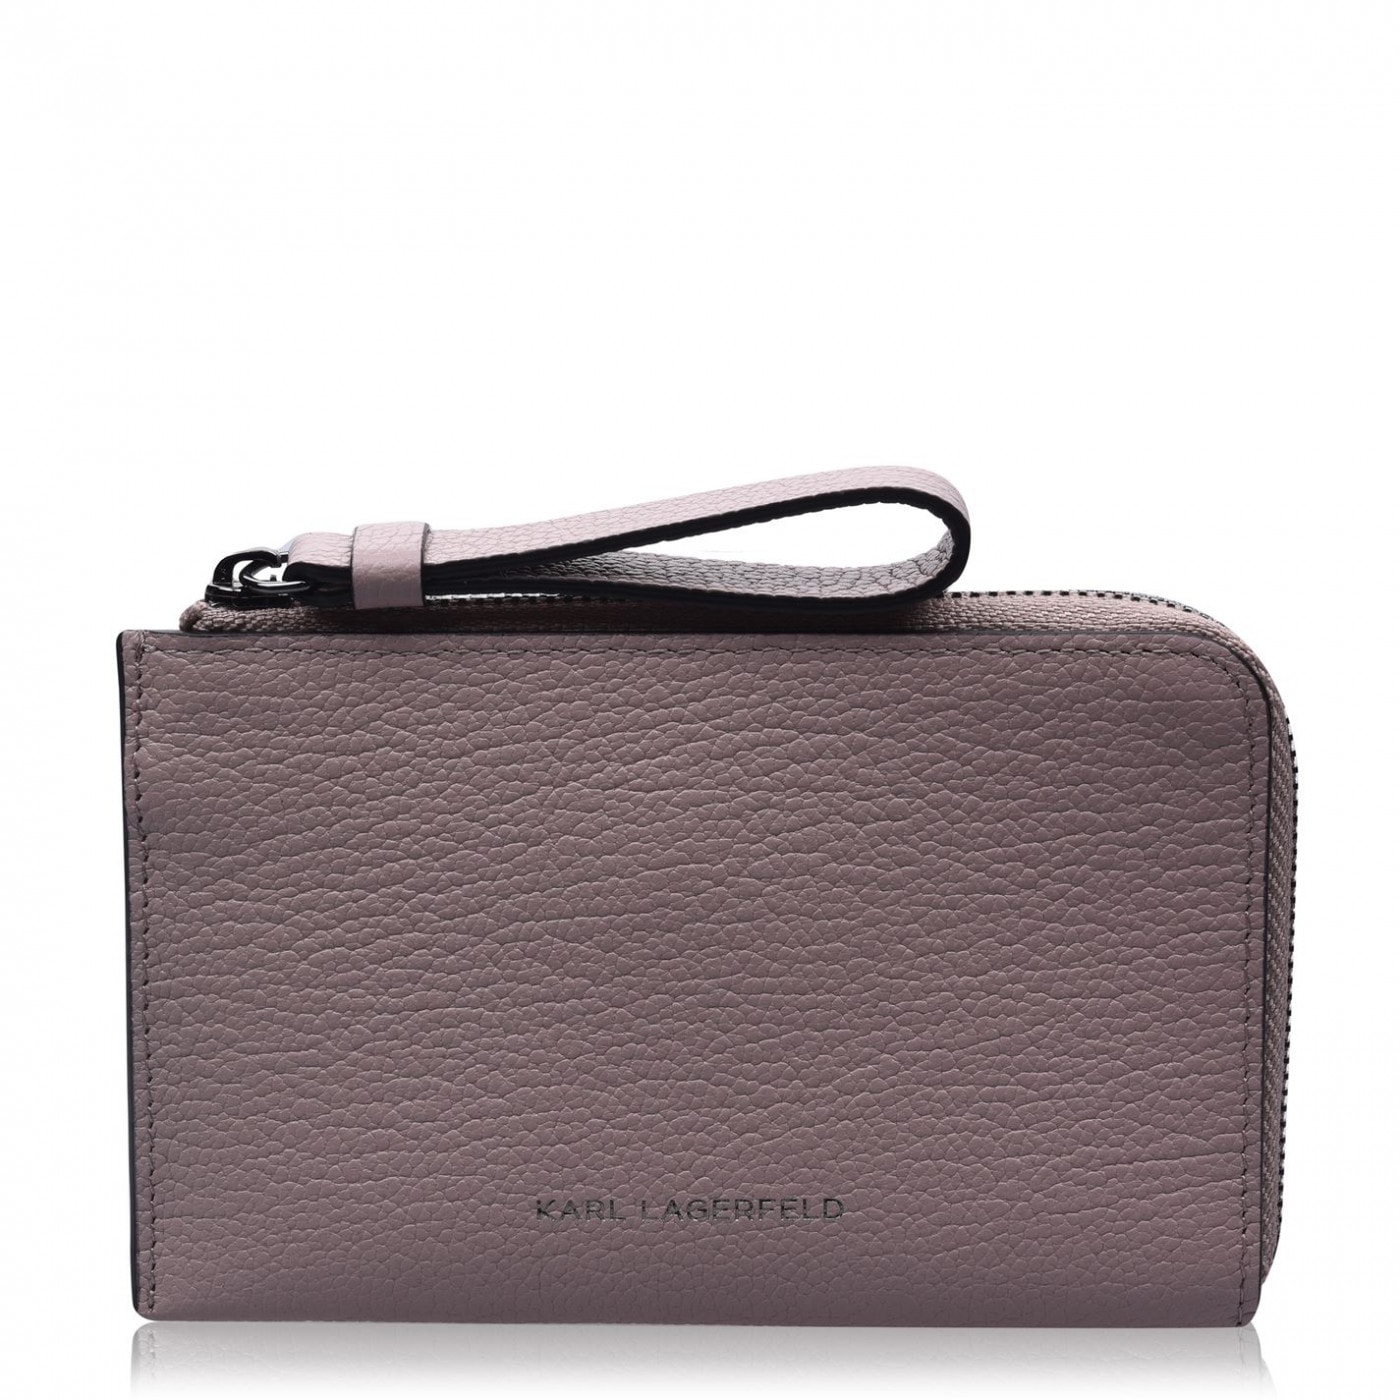 Karl Lagerfeld Karl Vek Extra Small Coin Purse